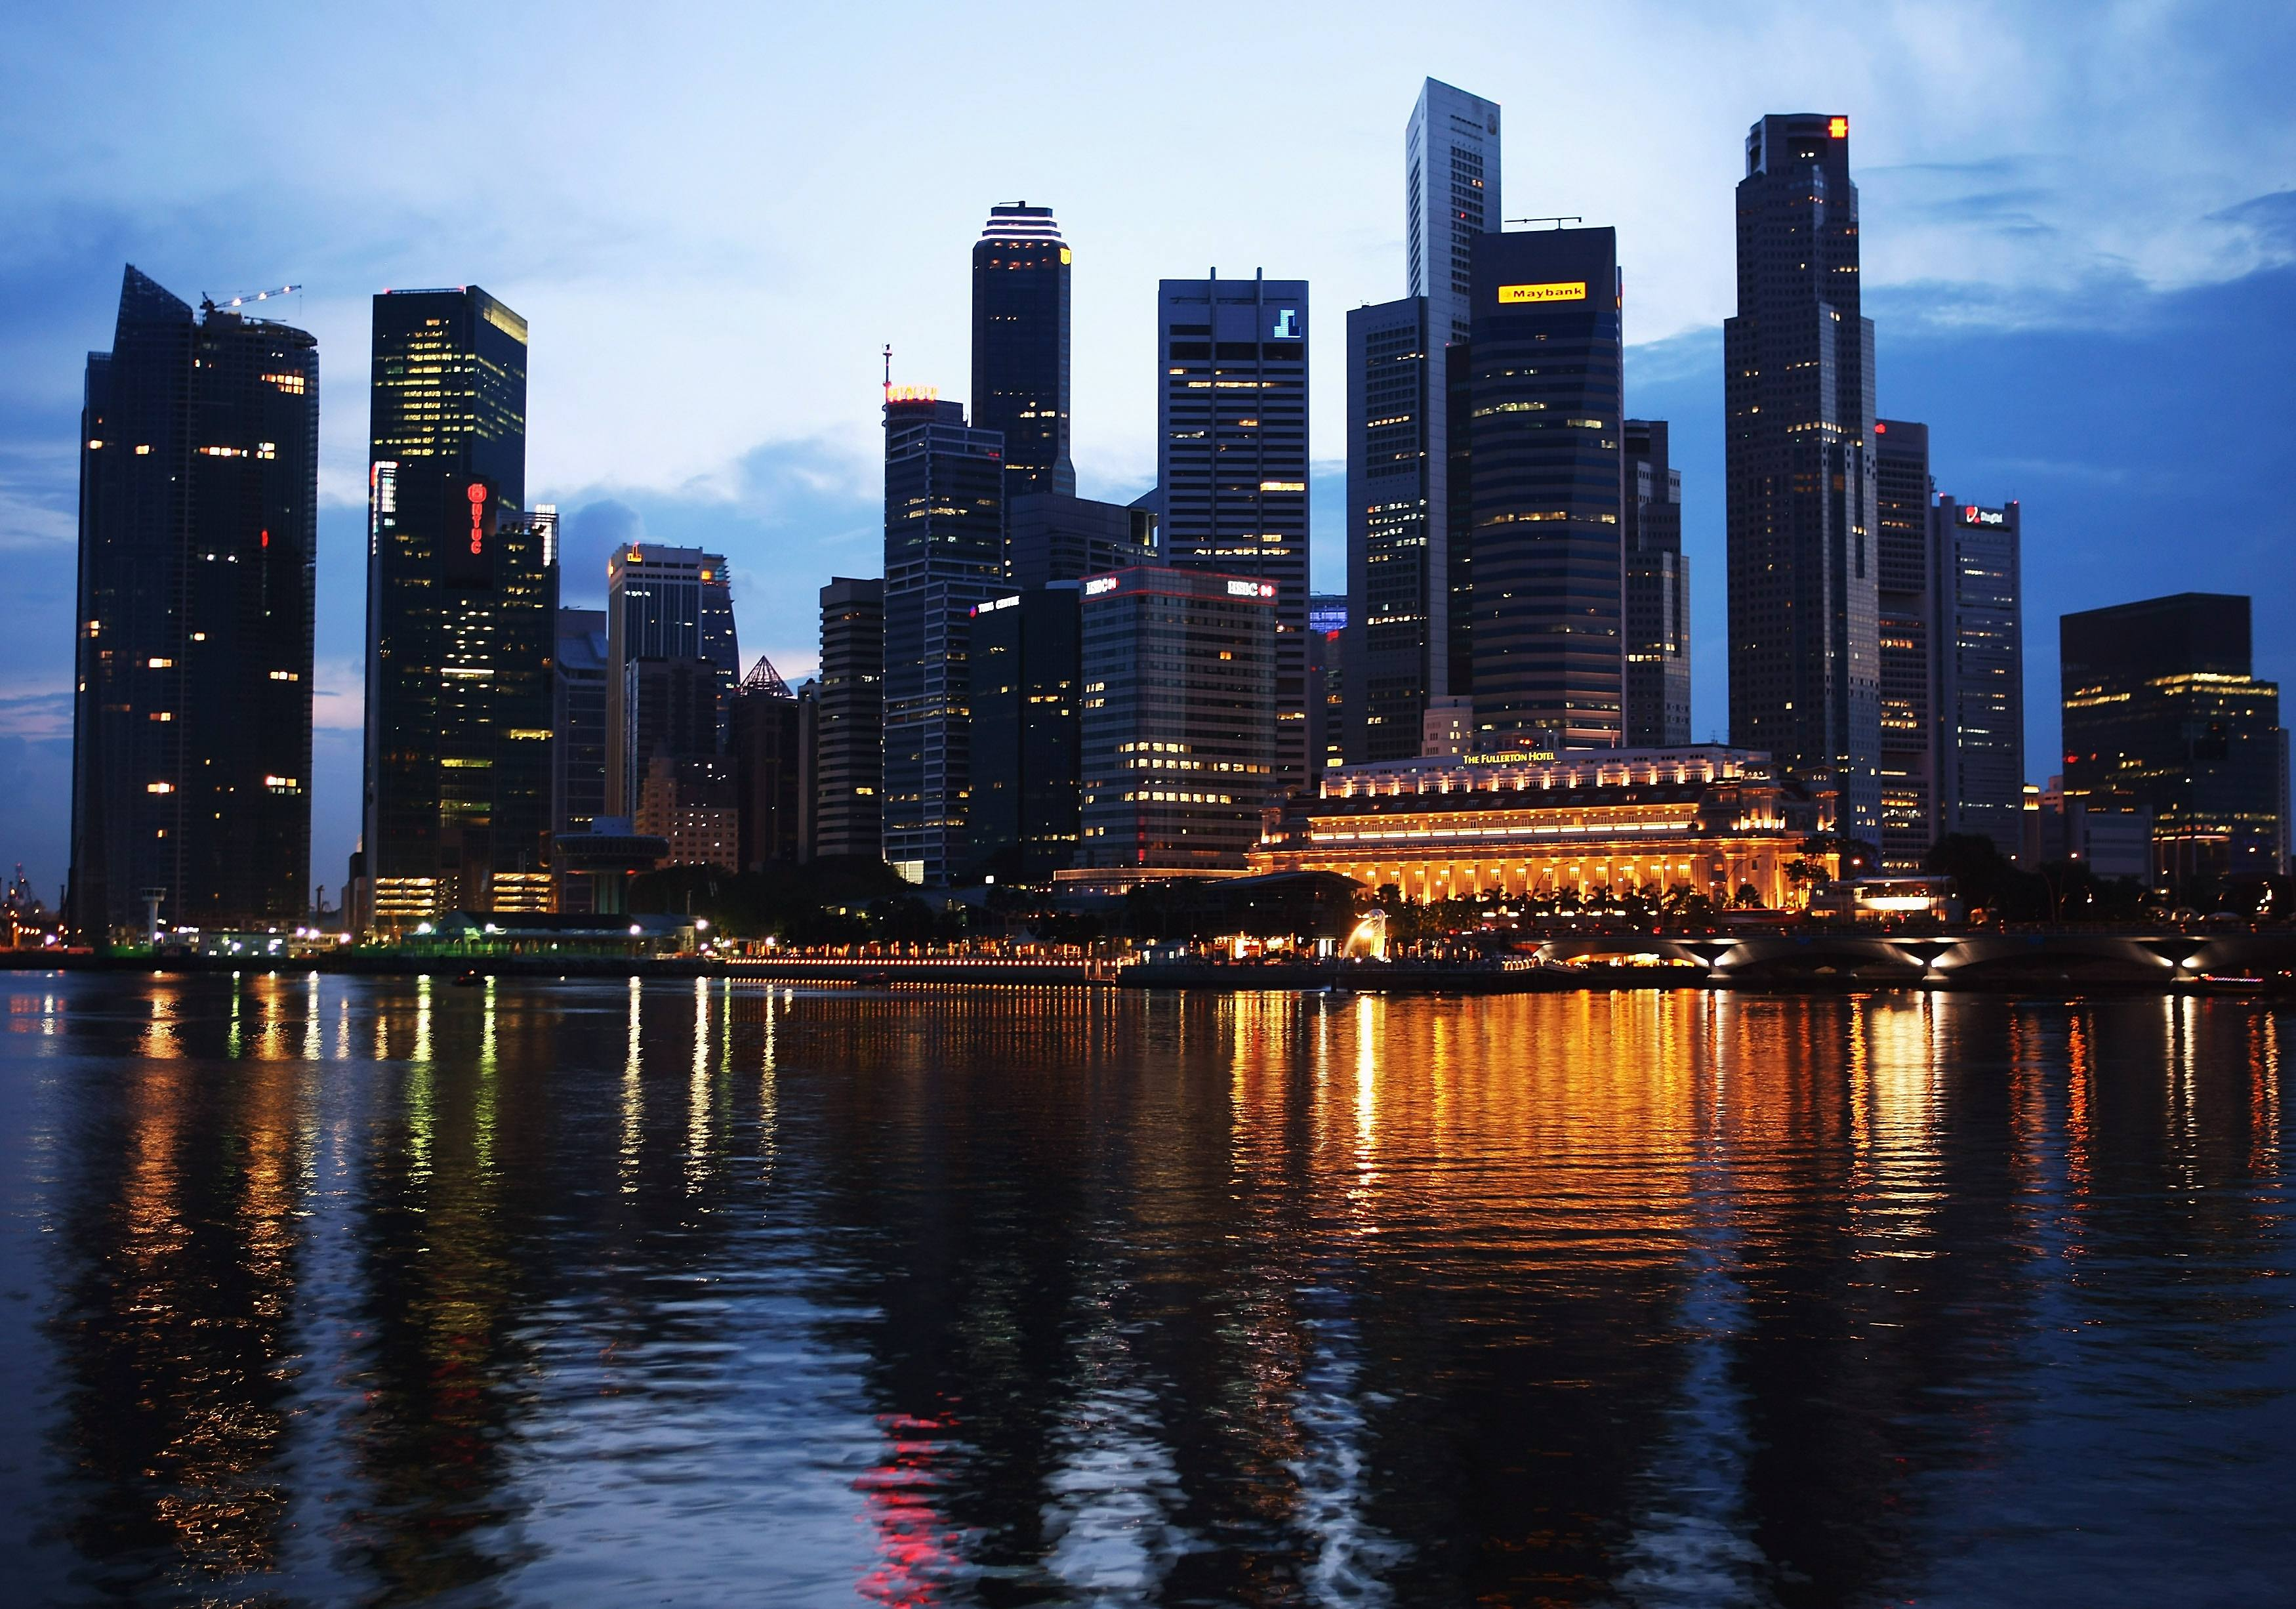 a view of singapore over the water at night